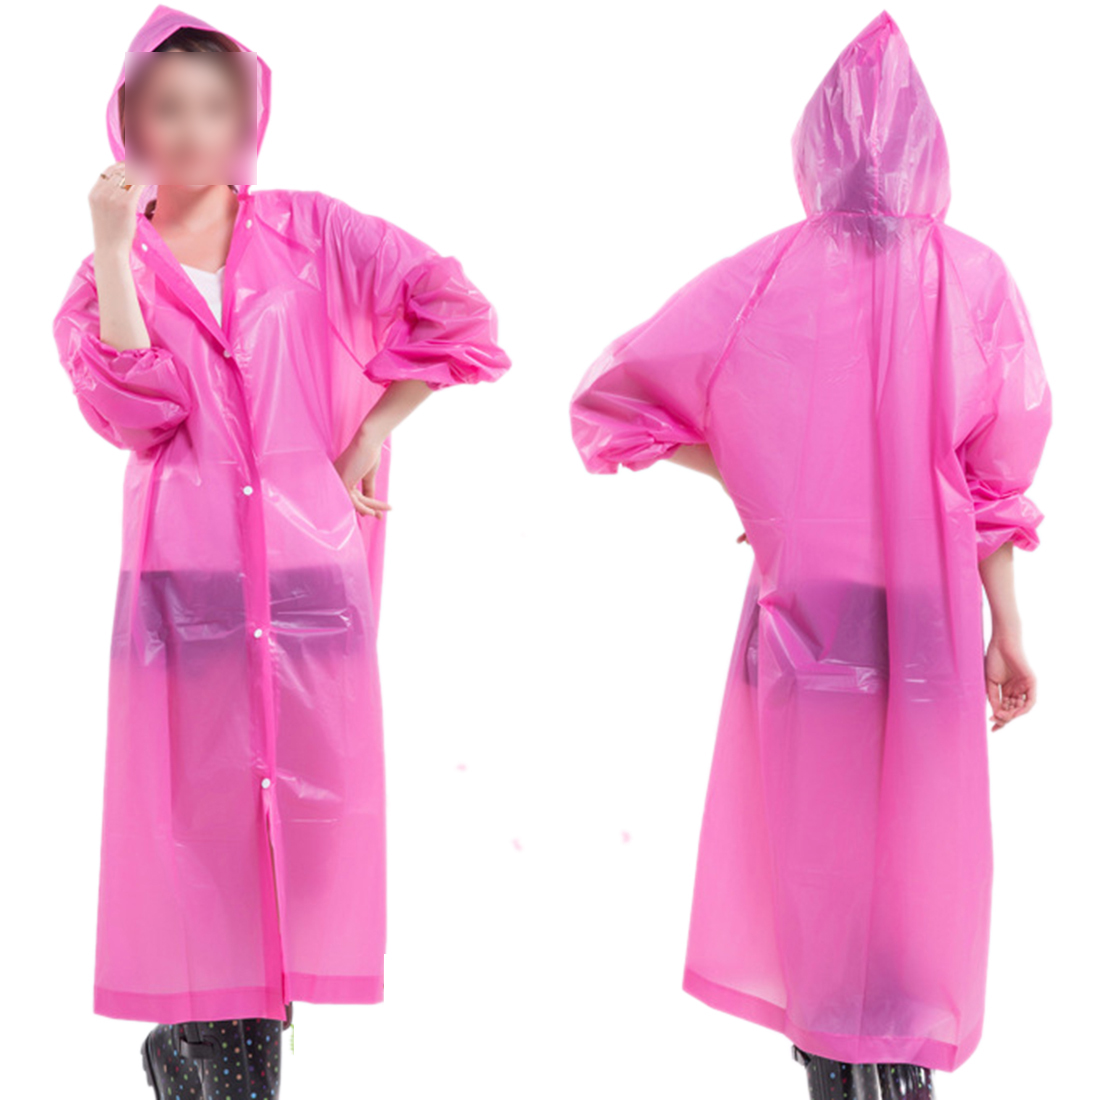 Adult Men Women Raincoat Fashion Portable Lightweight Hooded NOT Disposable Raincoat Reusable Rainwear ...